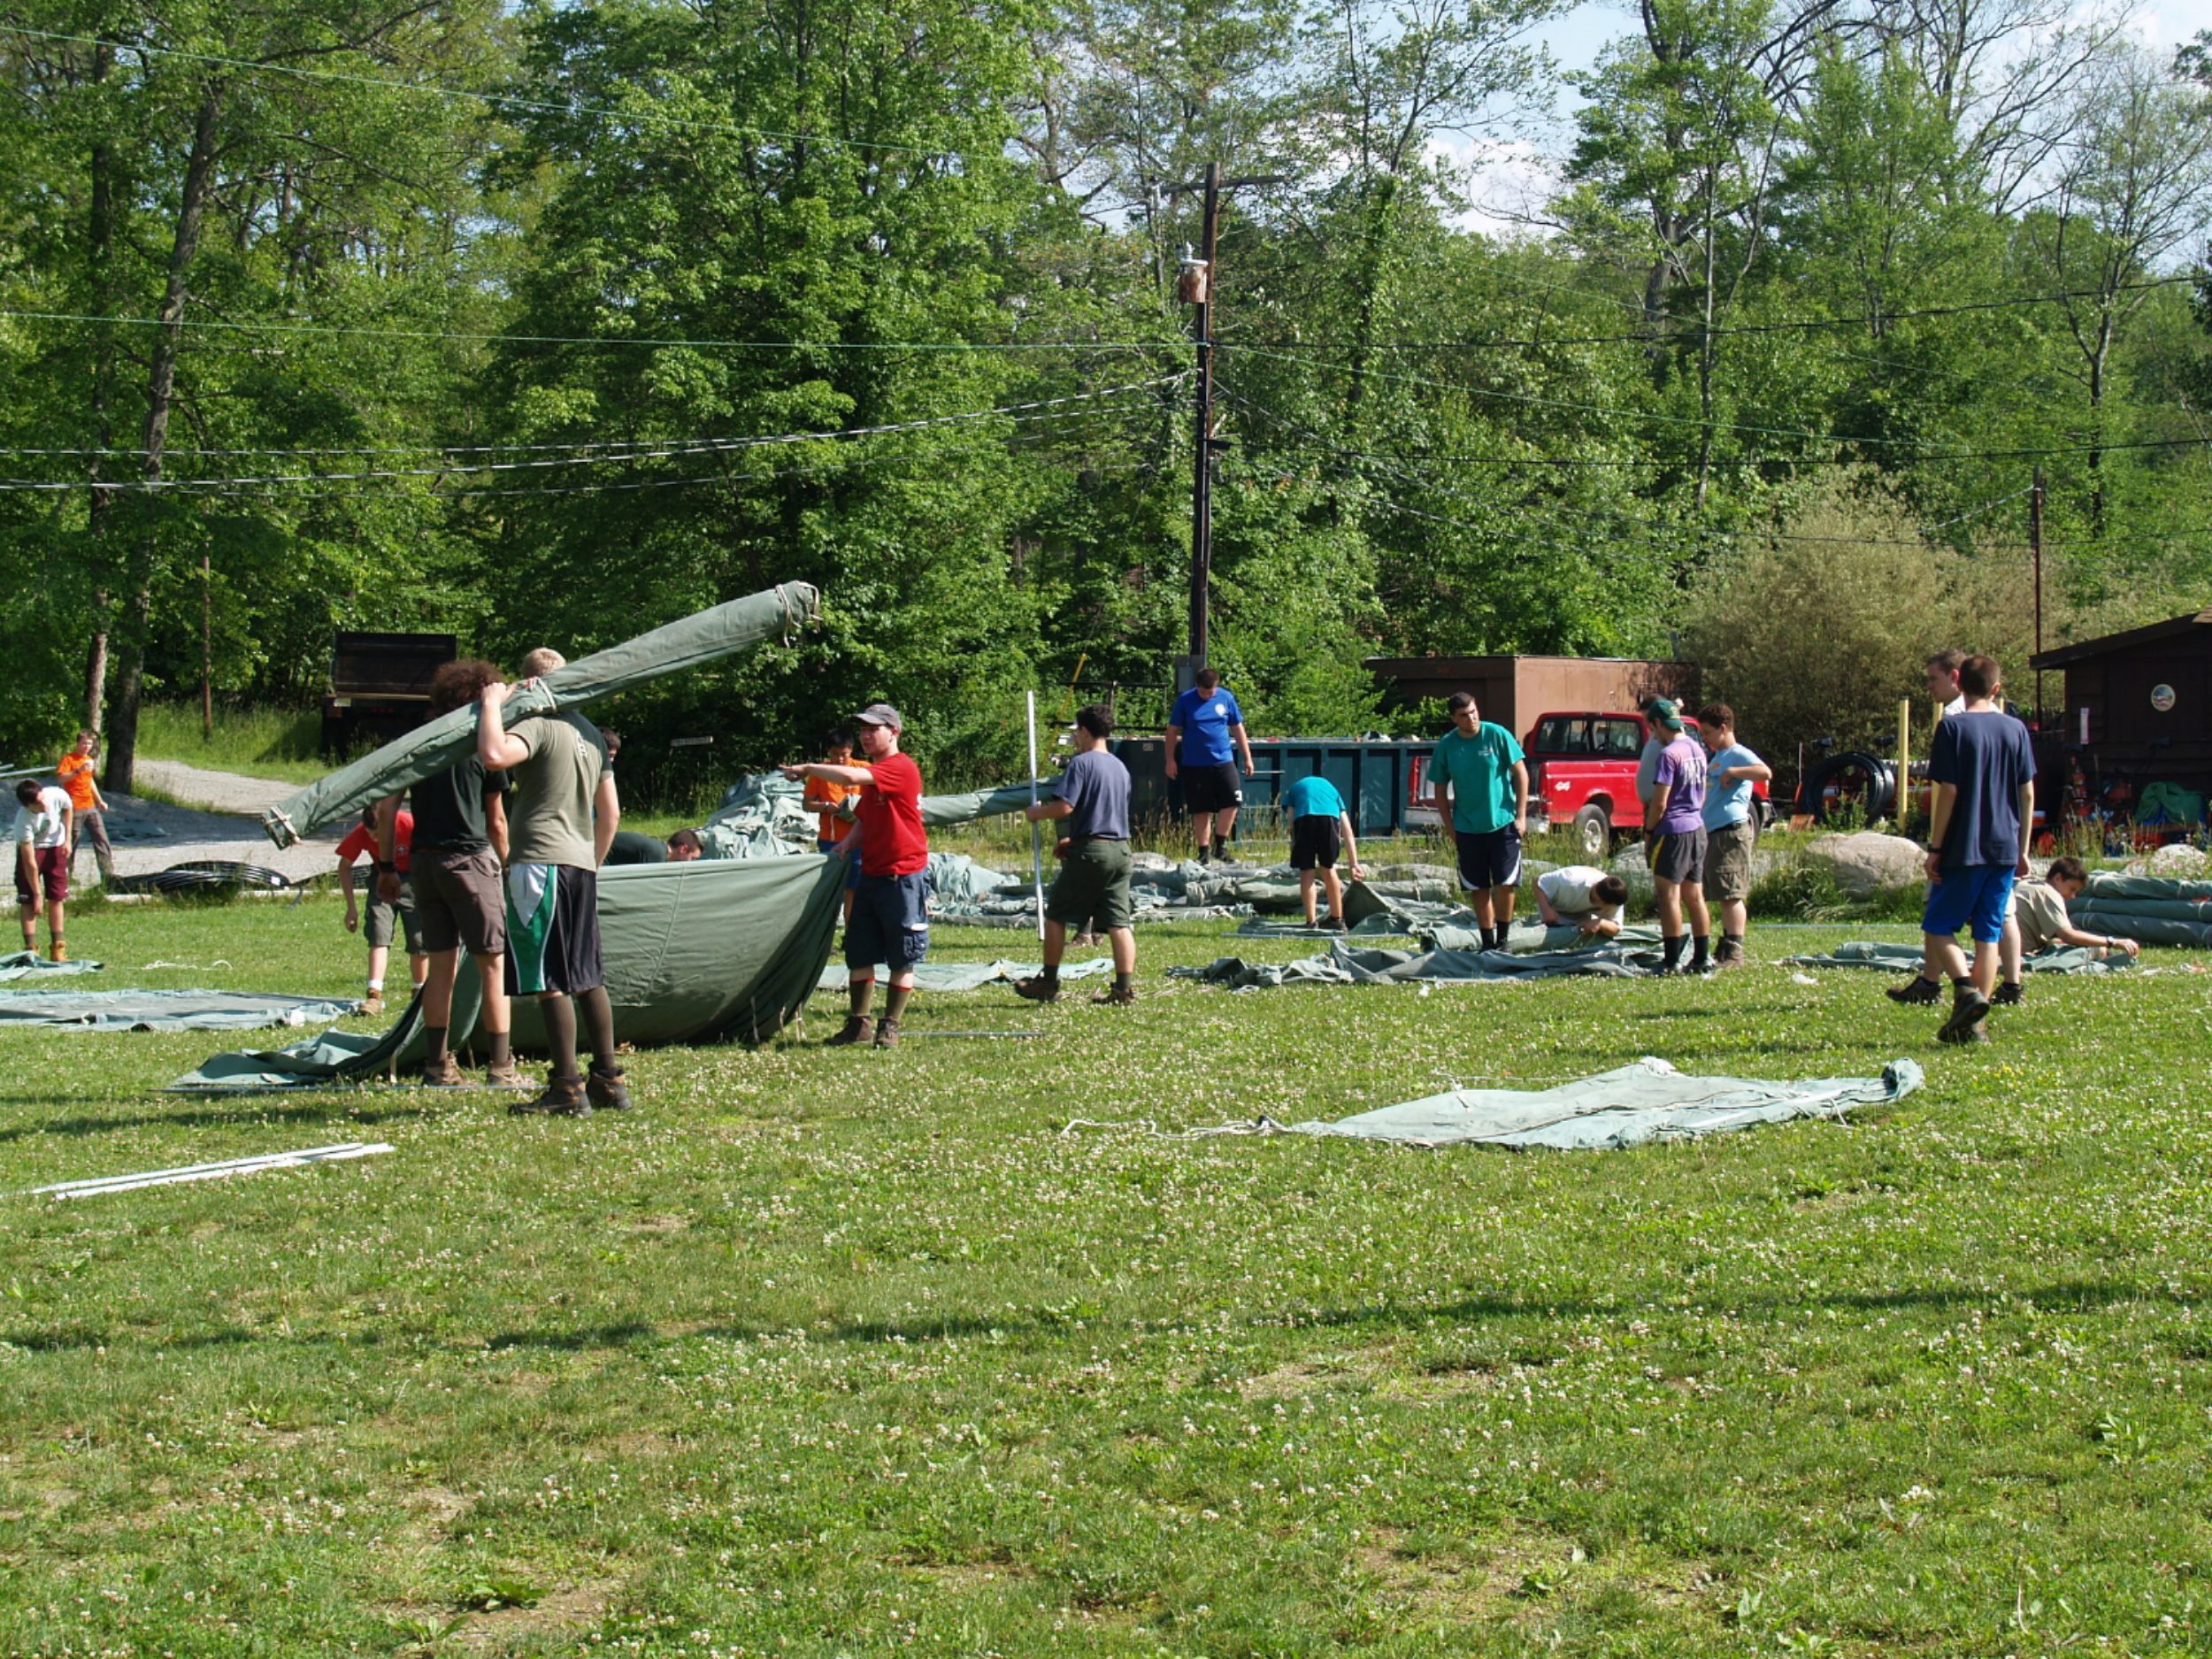 The Staff getting tents ready to go into campsites.